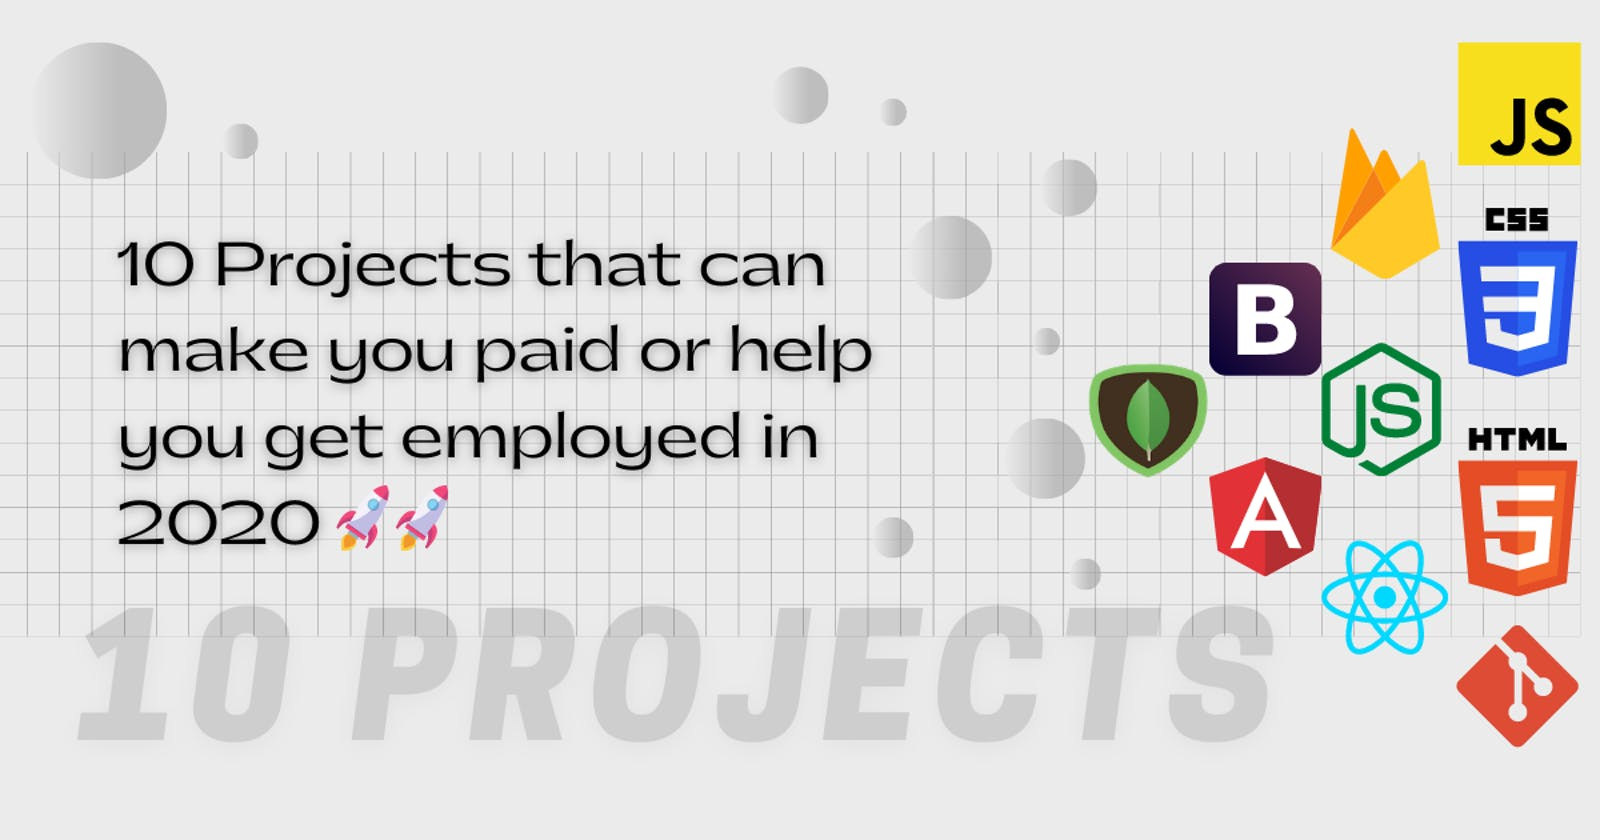 10 Projects that will make you paid or get you employed in 2020. ⚡🔥